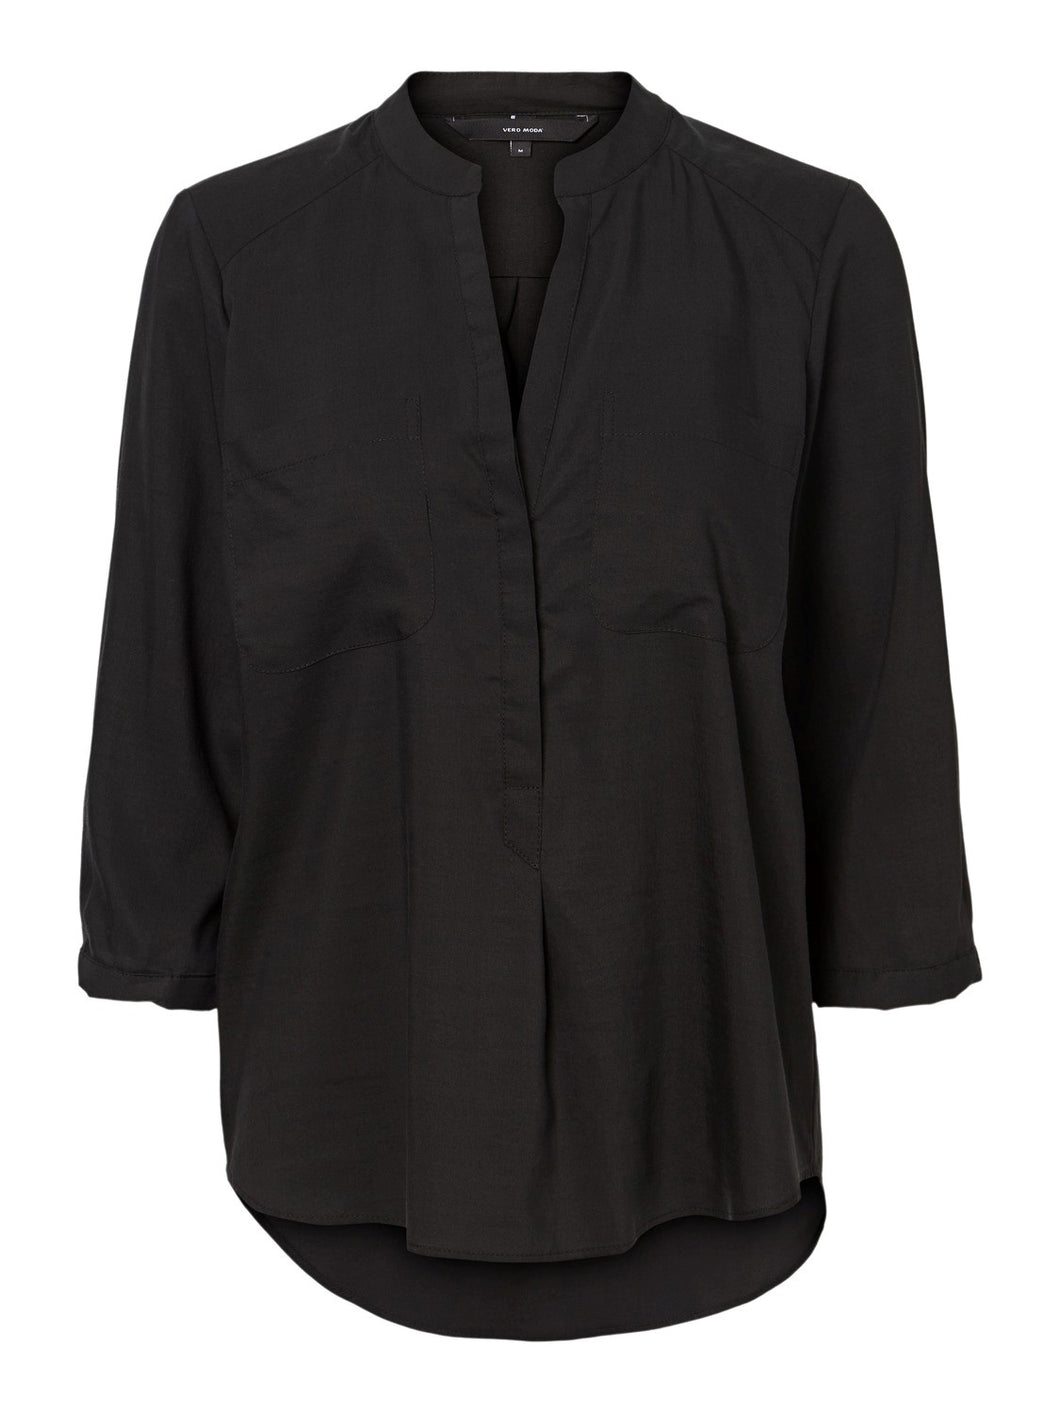 Vero Moda Tanya 3/4 Sleeve Blouse Black